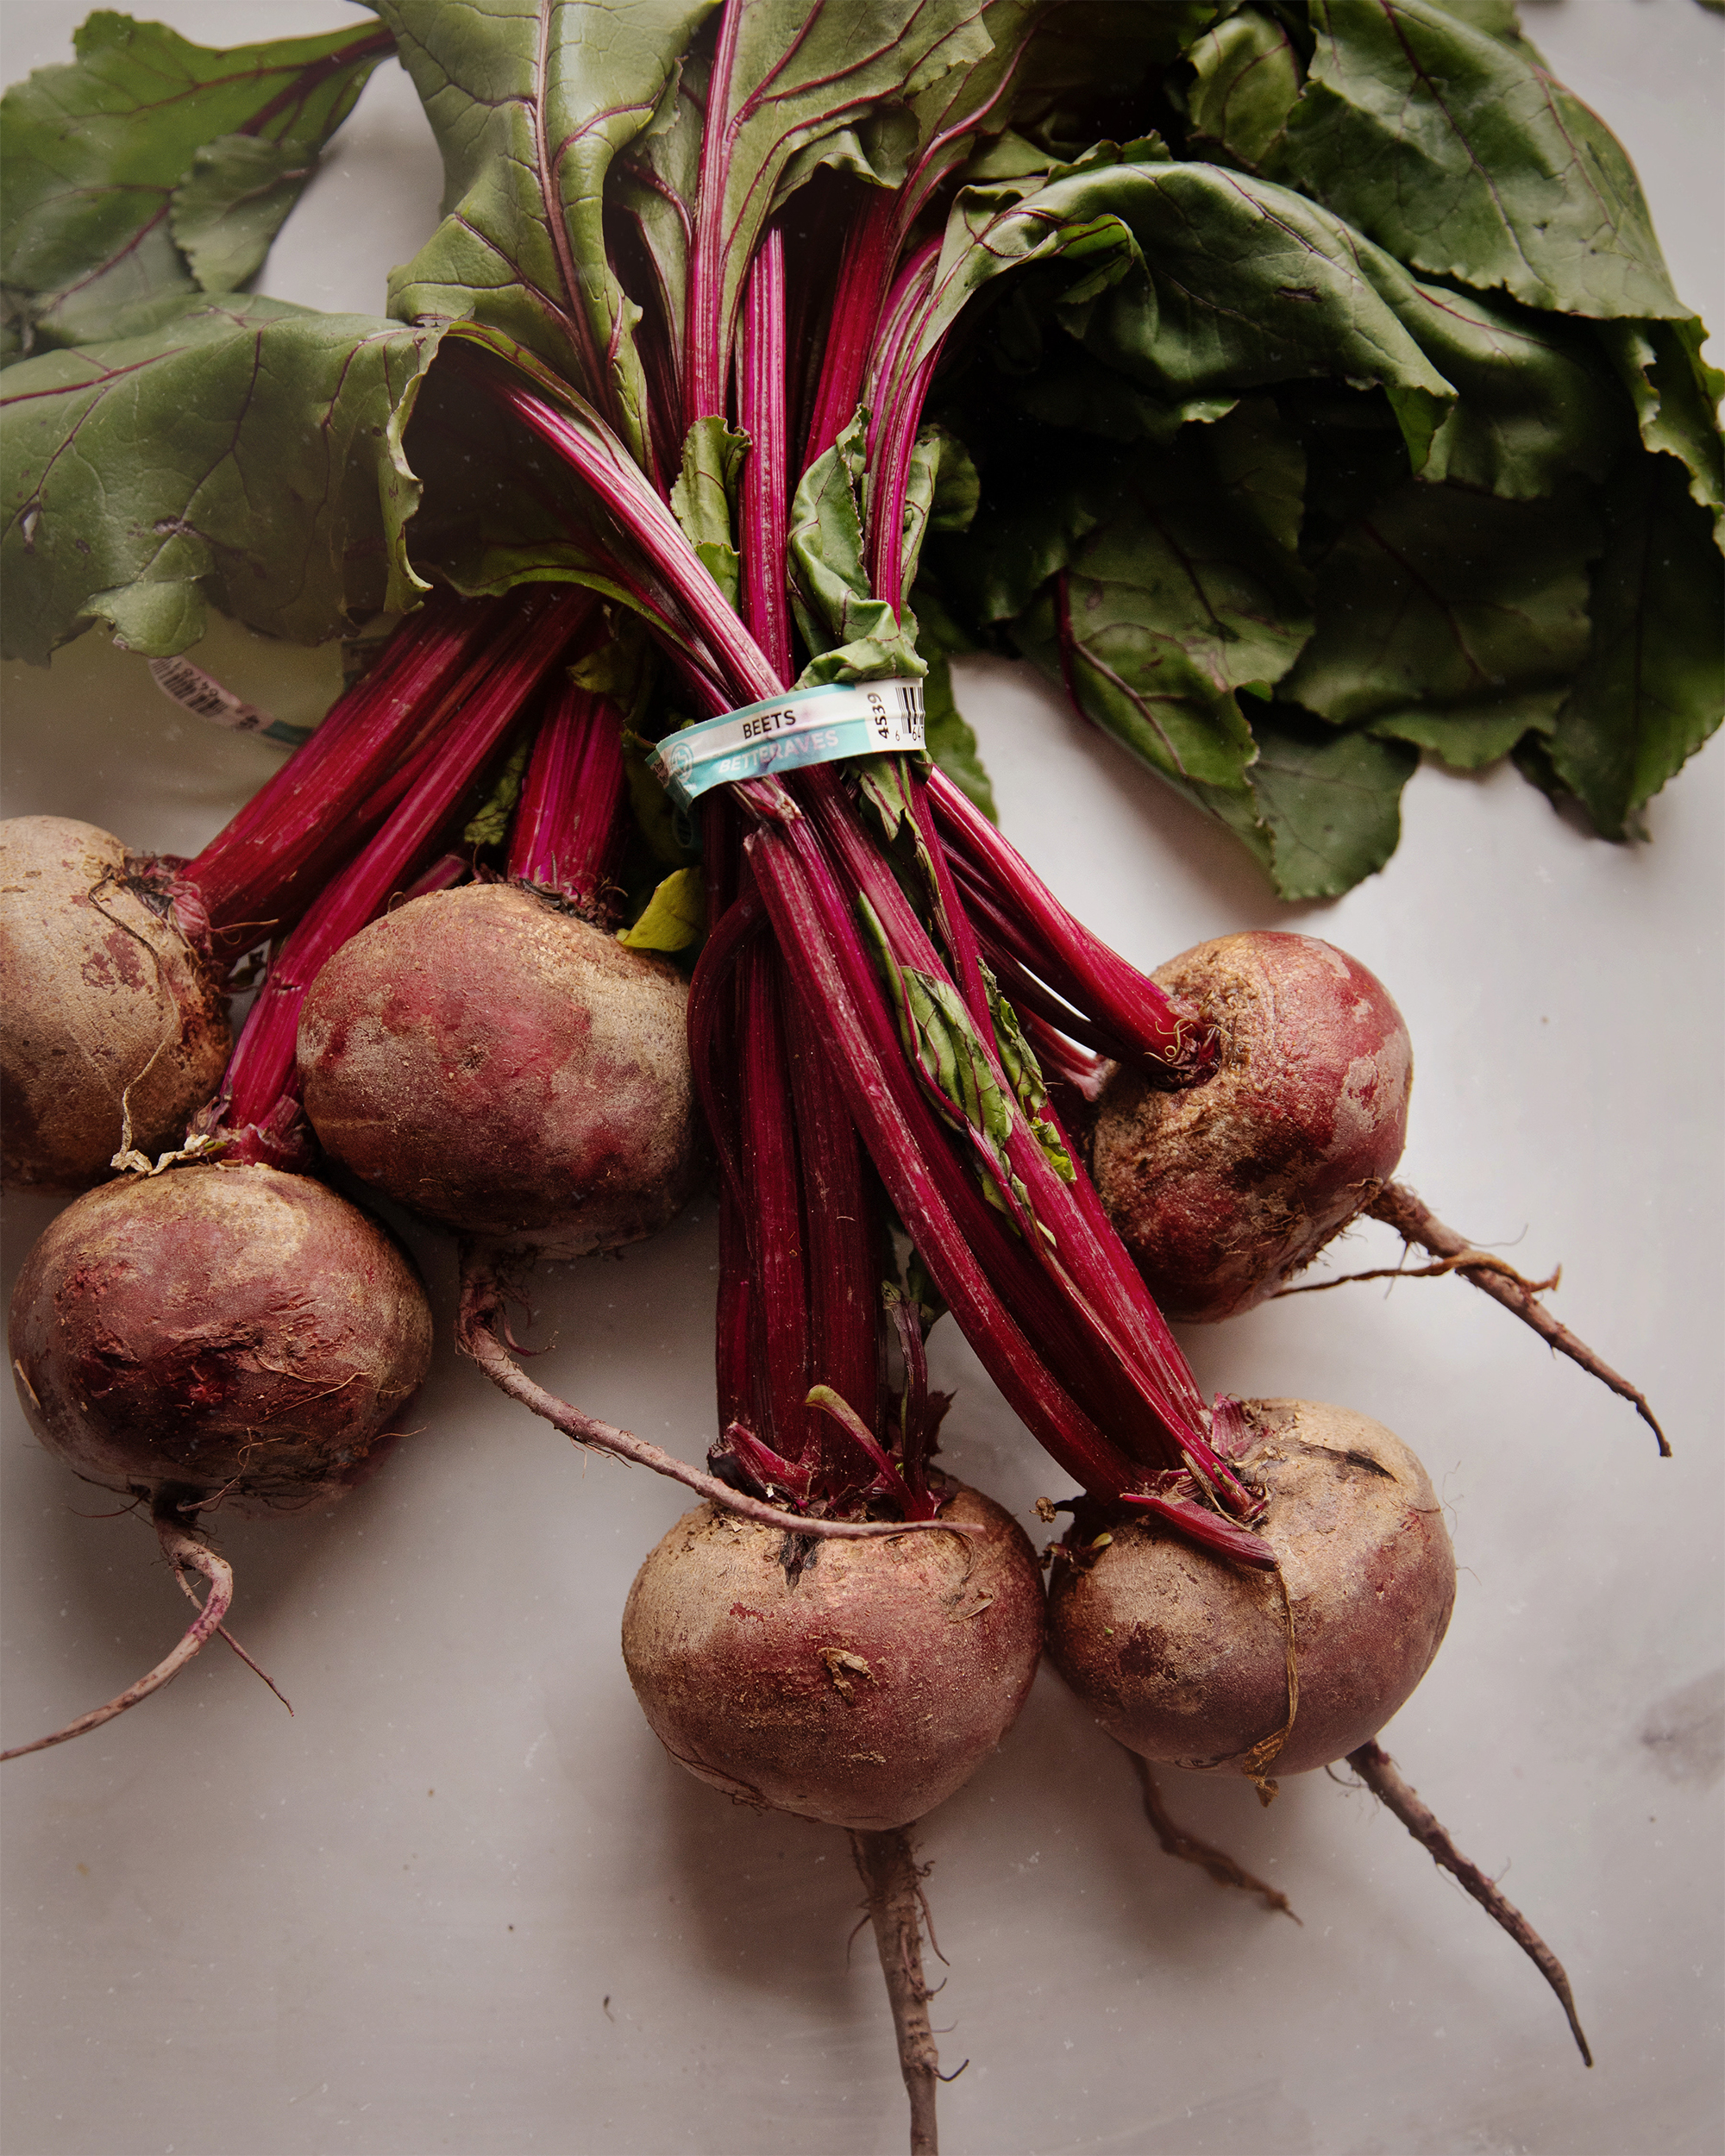 An overhead shot of two bunches of beets with greens on a white background. The lighting is soft and natural.